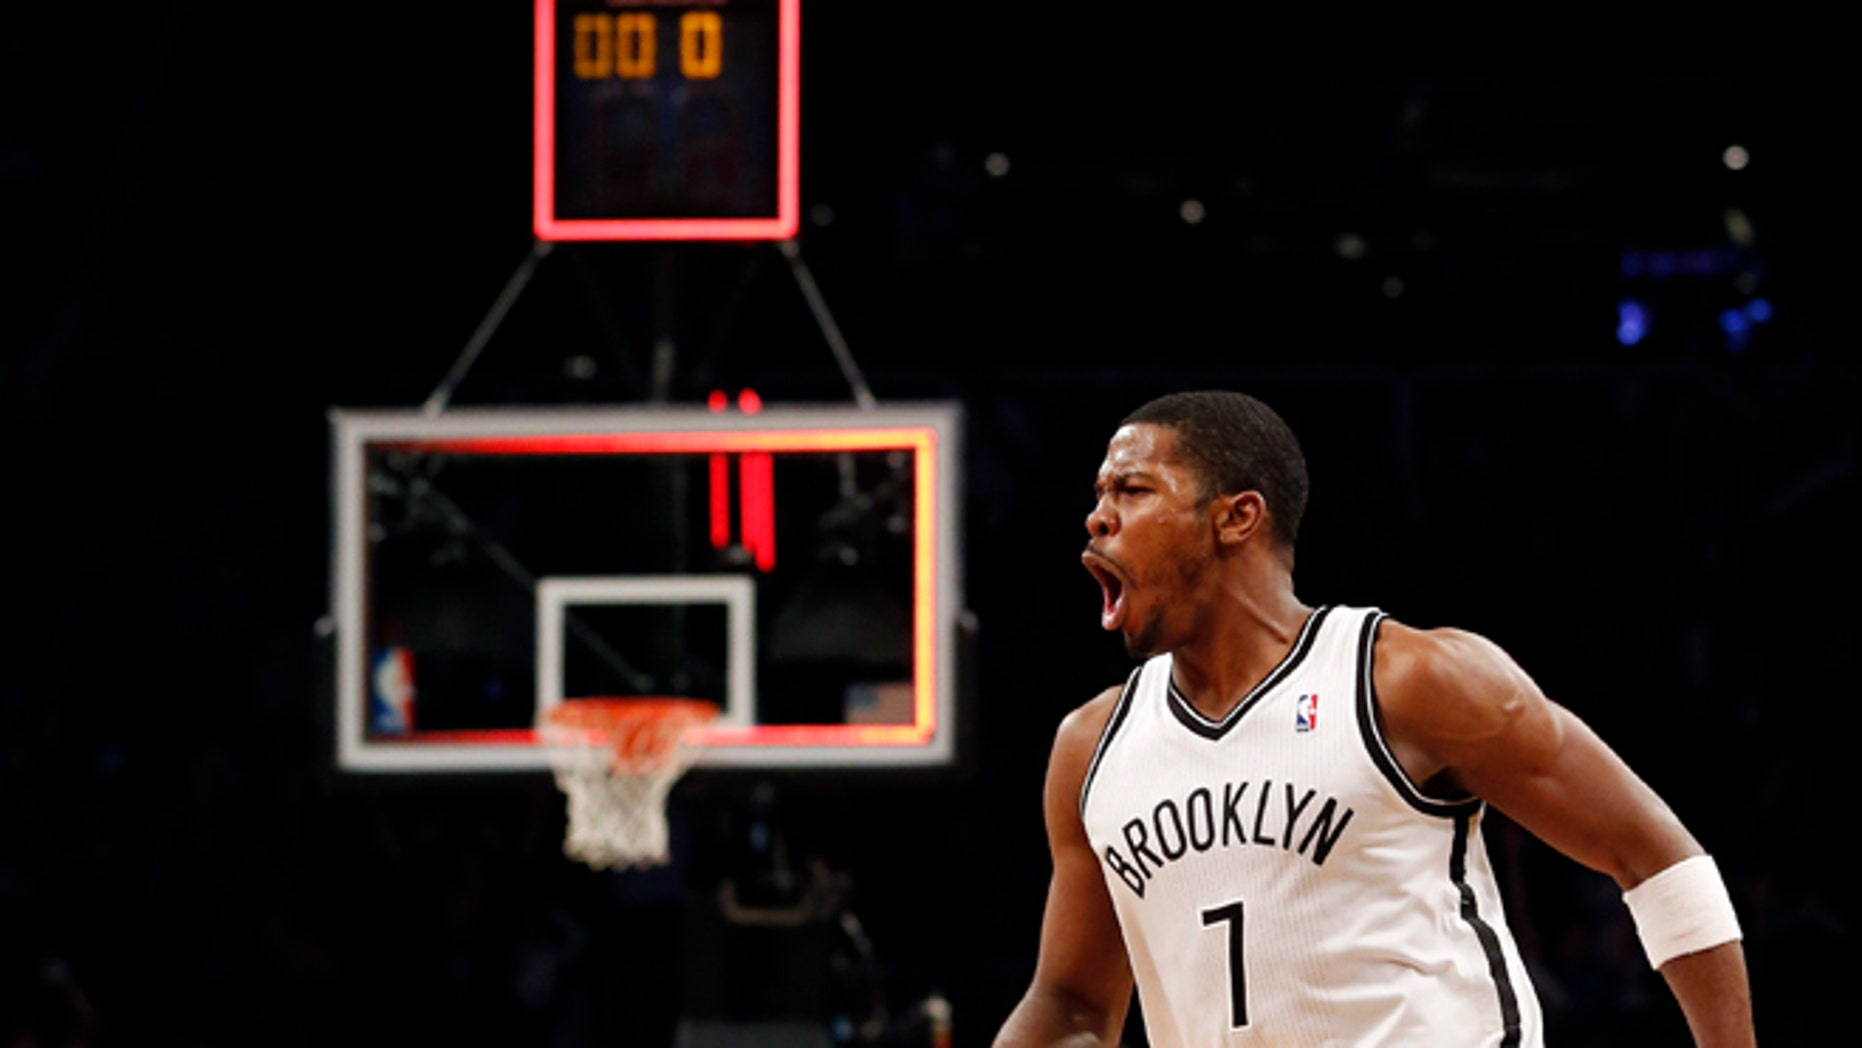 Brooklyn Nets guard Joe Johnson (7) celebrates after hitting the game winning shot for a 107-105 victory in double overtime against the Detroit Pistons after their NBA basketball game at Barclays Center, Friday, Dec. 14, 2012, in New York. (AP Photo/John Minchillo)